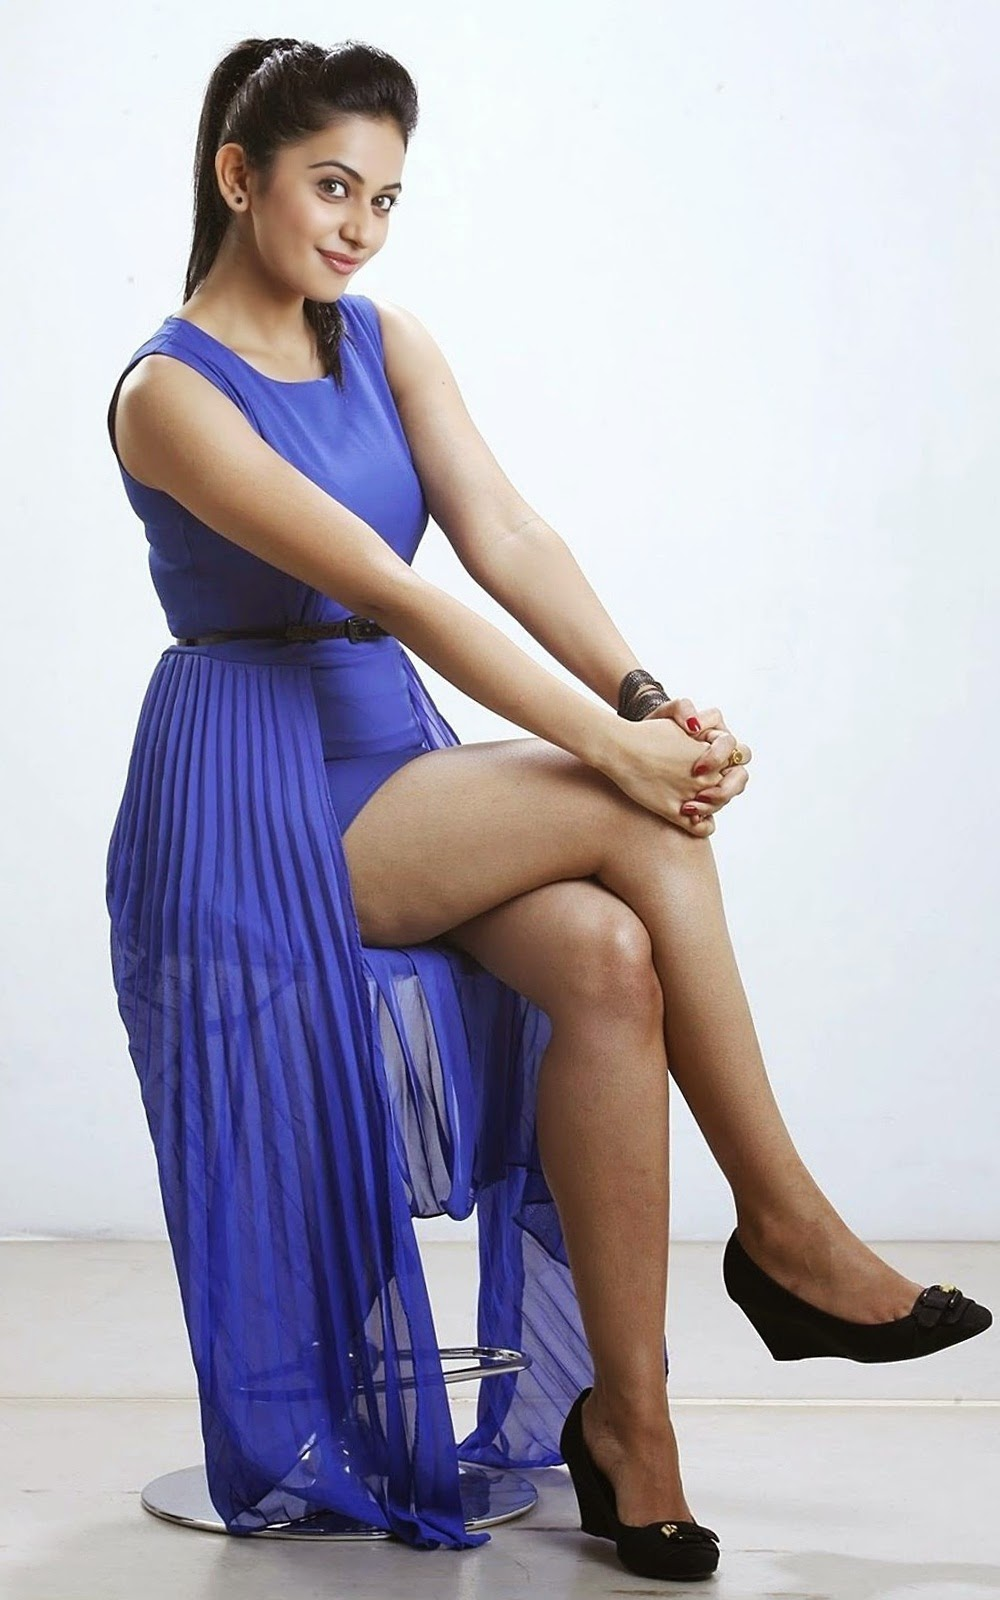 Rakul Preet In Hot Blue Top  Watch Continuously  Sexy